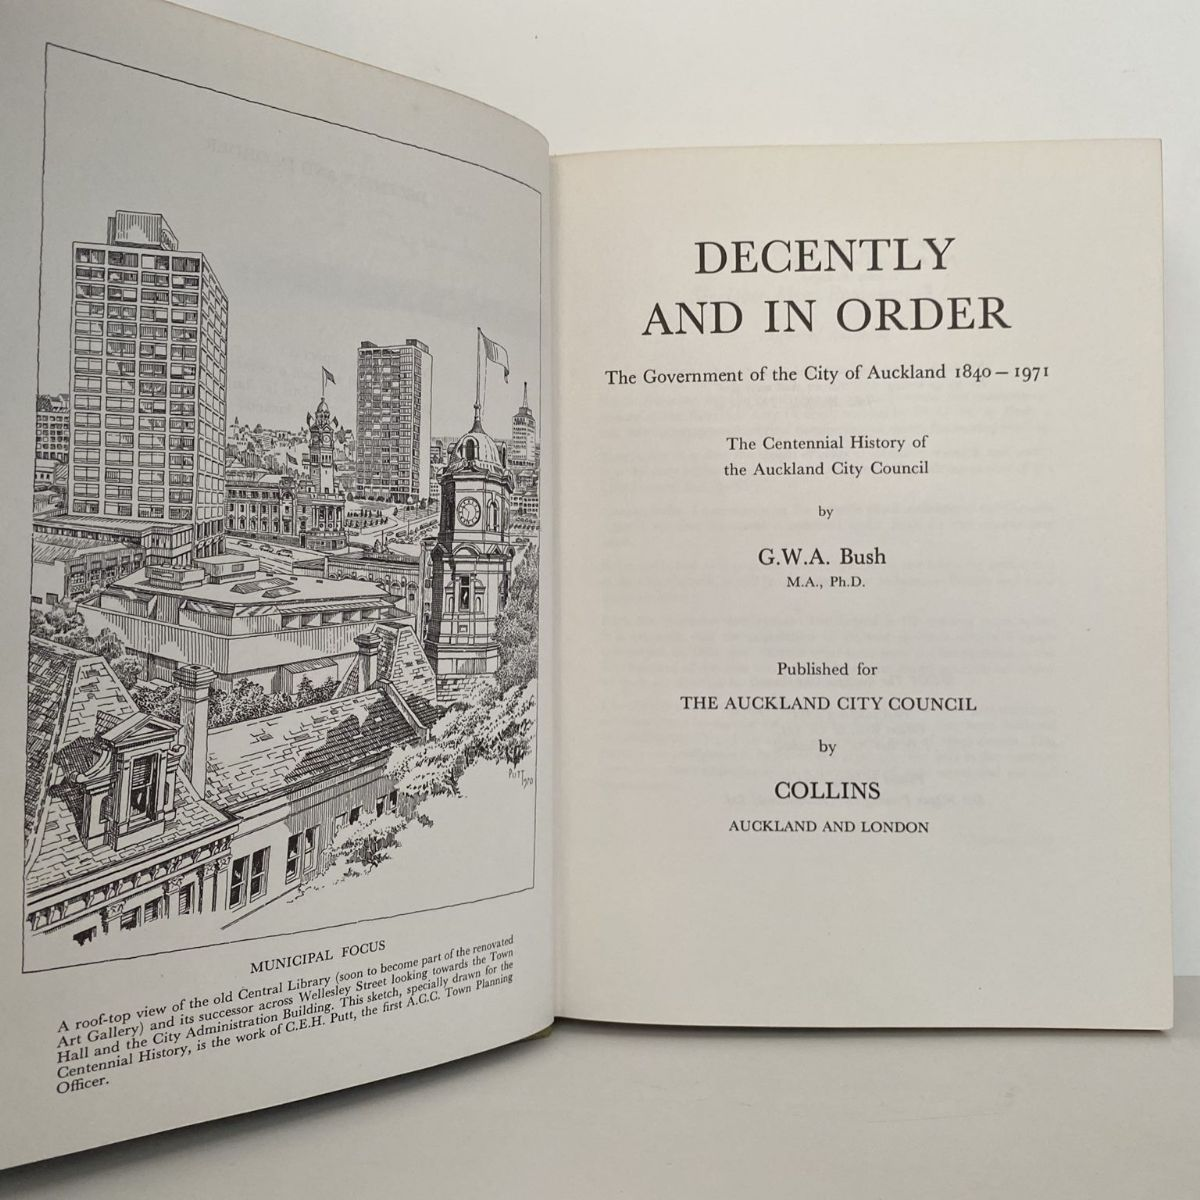 Decently and in Order : The Government of the City of Auckland 1840-1971